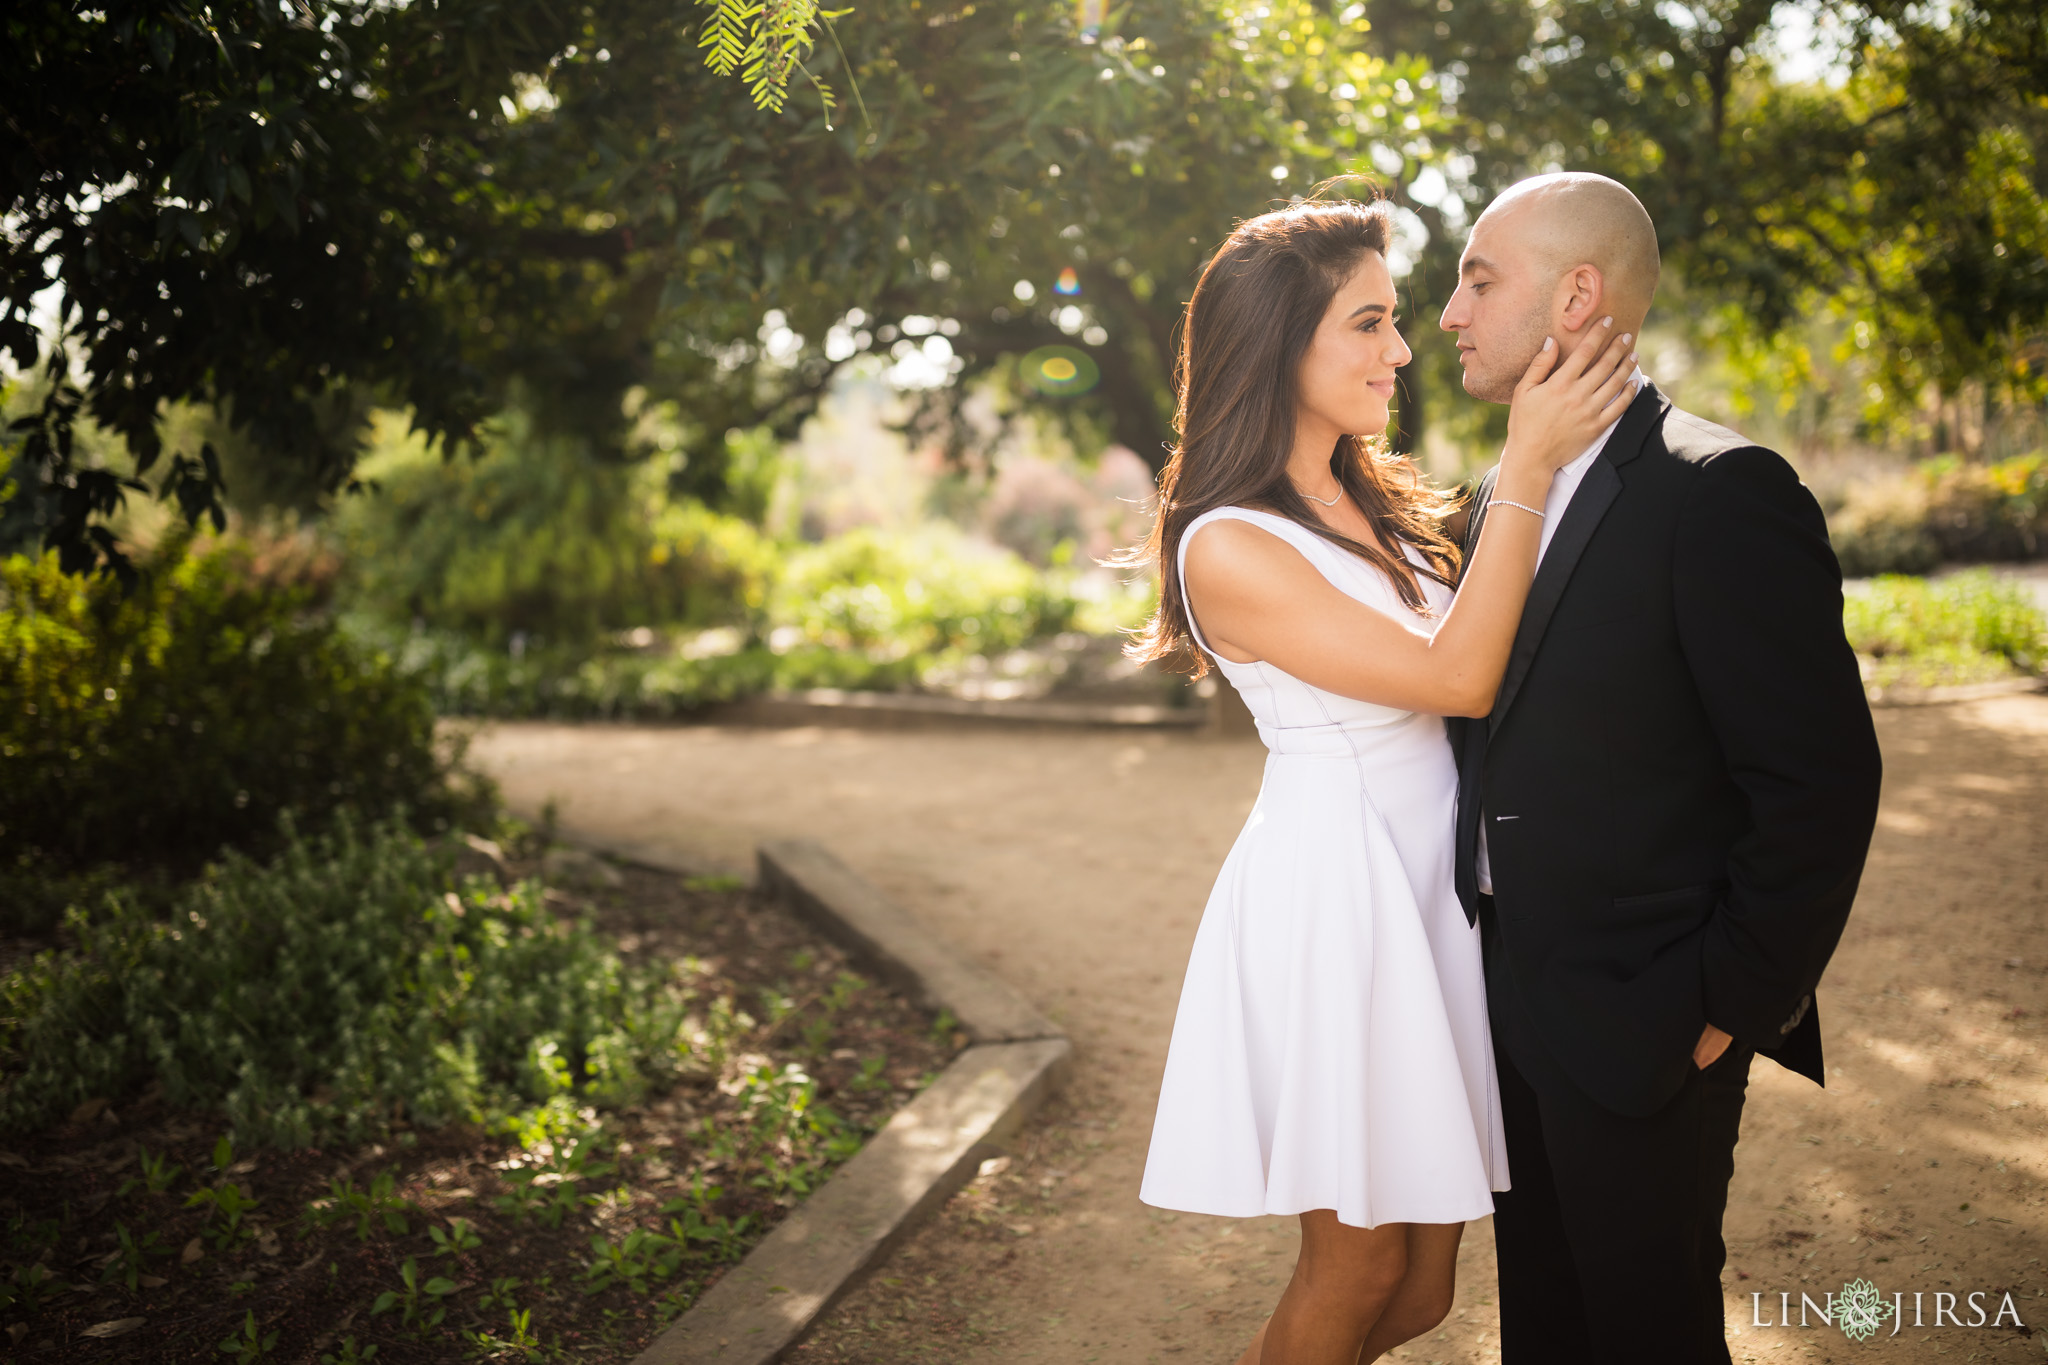 07-Los-angeles-arboretum-engagement-photography